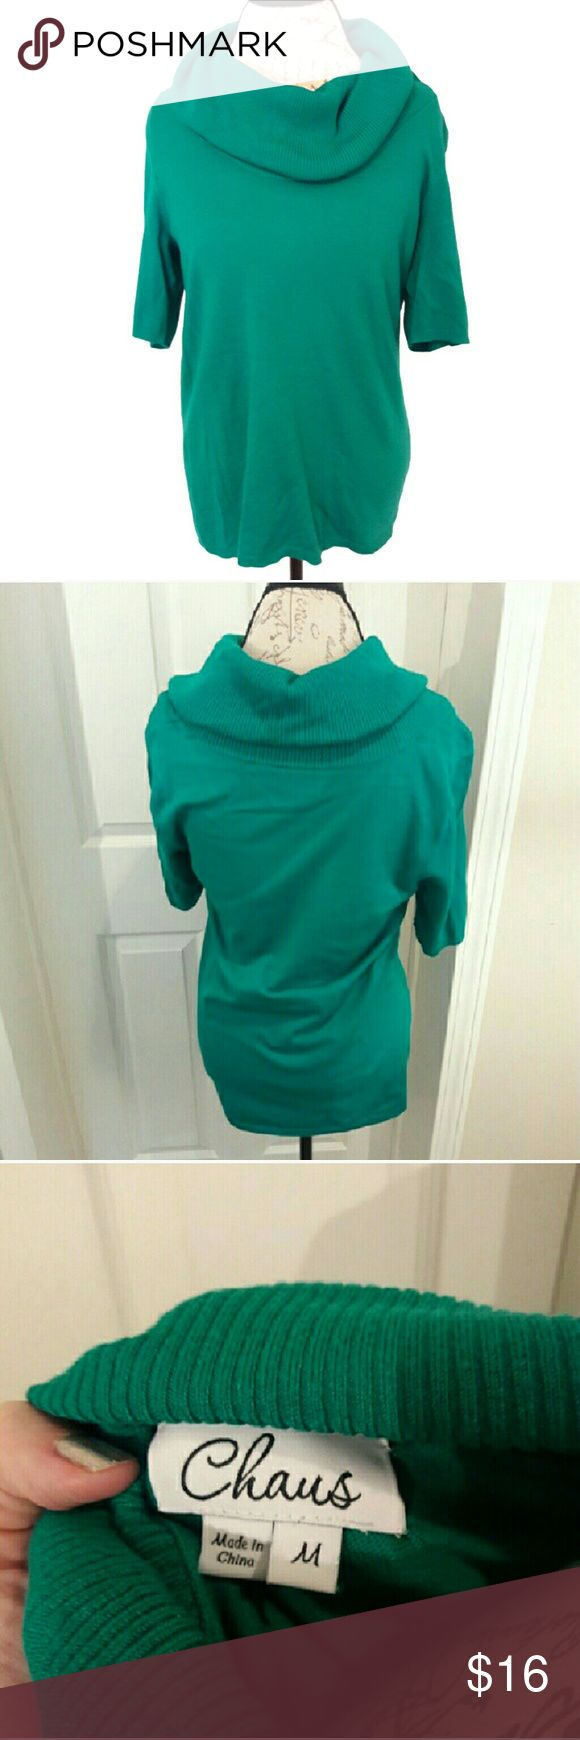 Cowl neck top by Chaus So beautiful! Has a nice cowl neck. Very soft and lightweight. Teal in color. Measurements provided in pics above. From a smoke and pet free home. Fast shipping! Office- Vacation - Wedding - Fun - Dress up- date night - cruise - spring- fall - winter 💜 IF YOU LIKE MY ITEMS, please FOLLOW ME to see NEW ARRIVALS that are added weekly! 💜 Chaus Tops